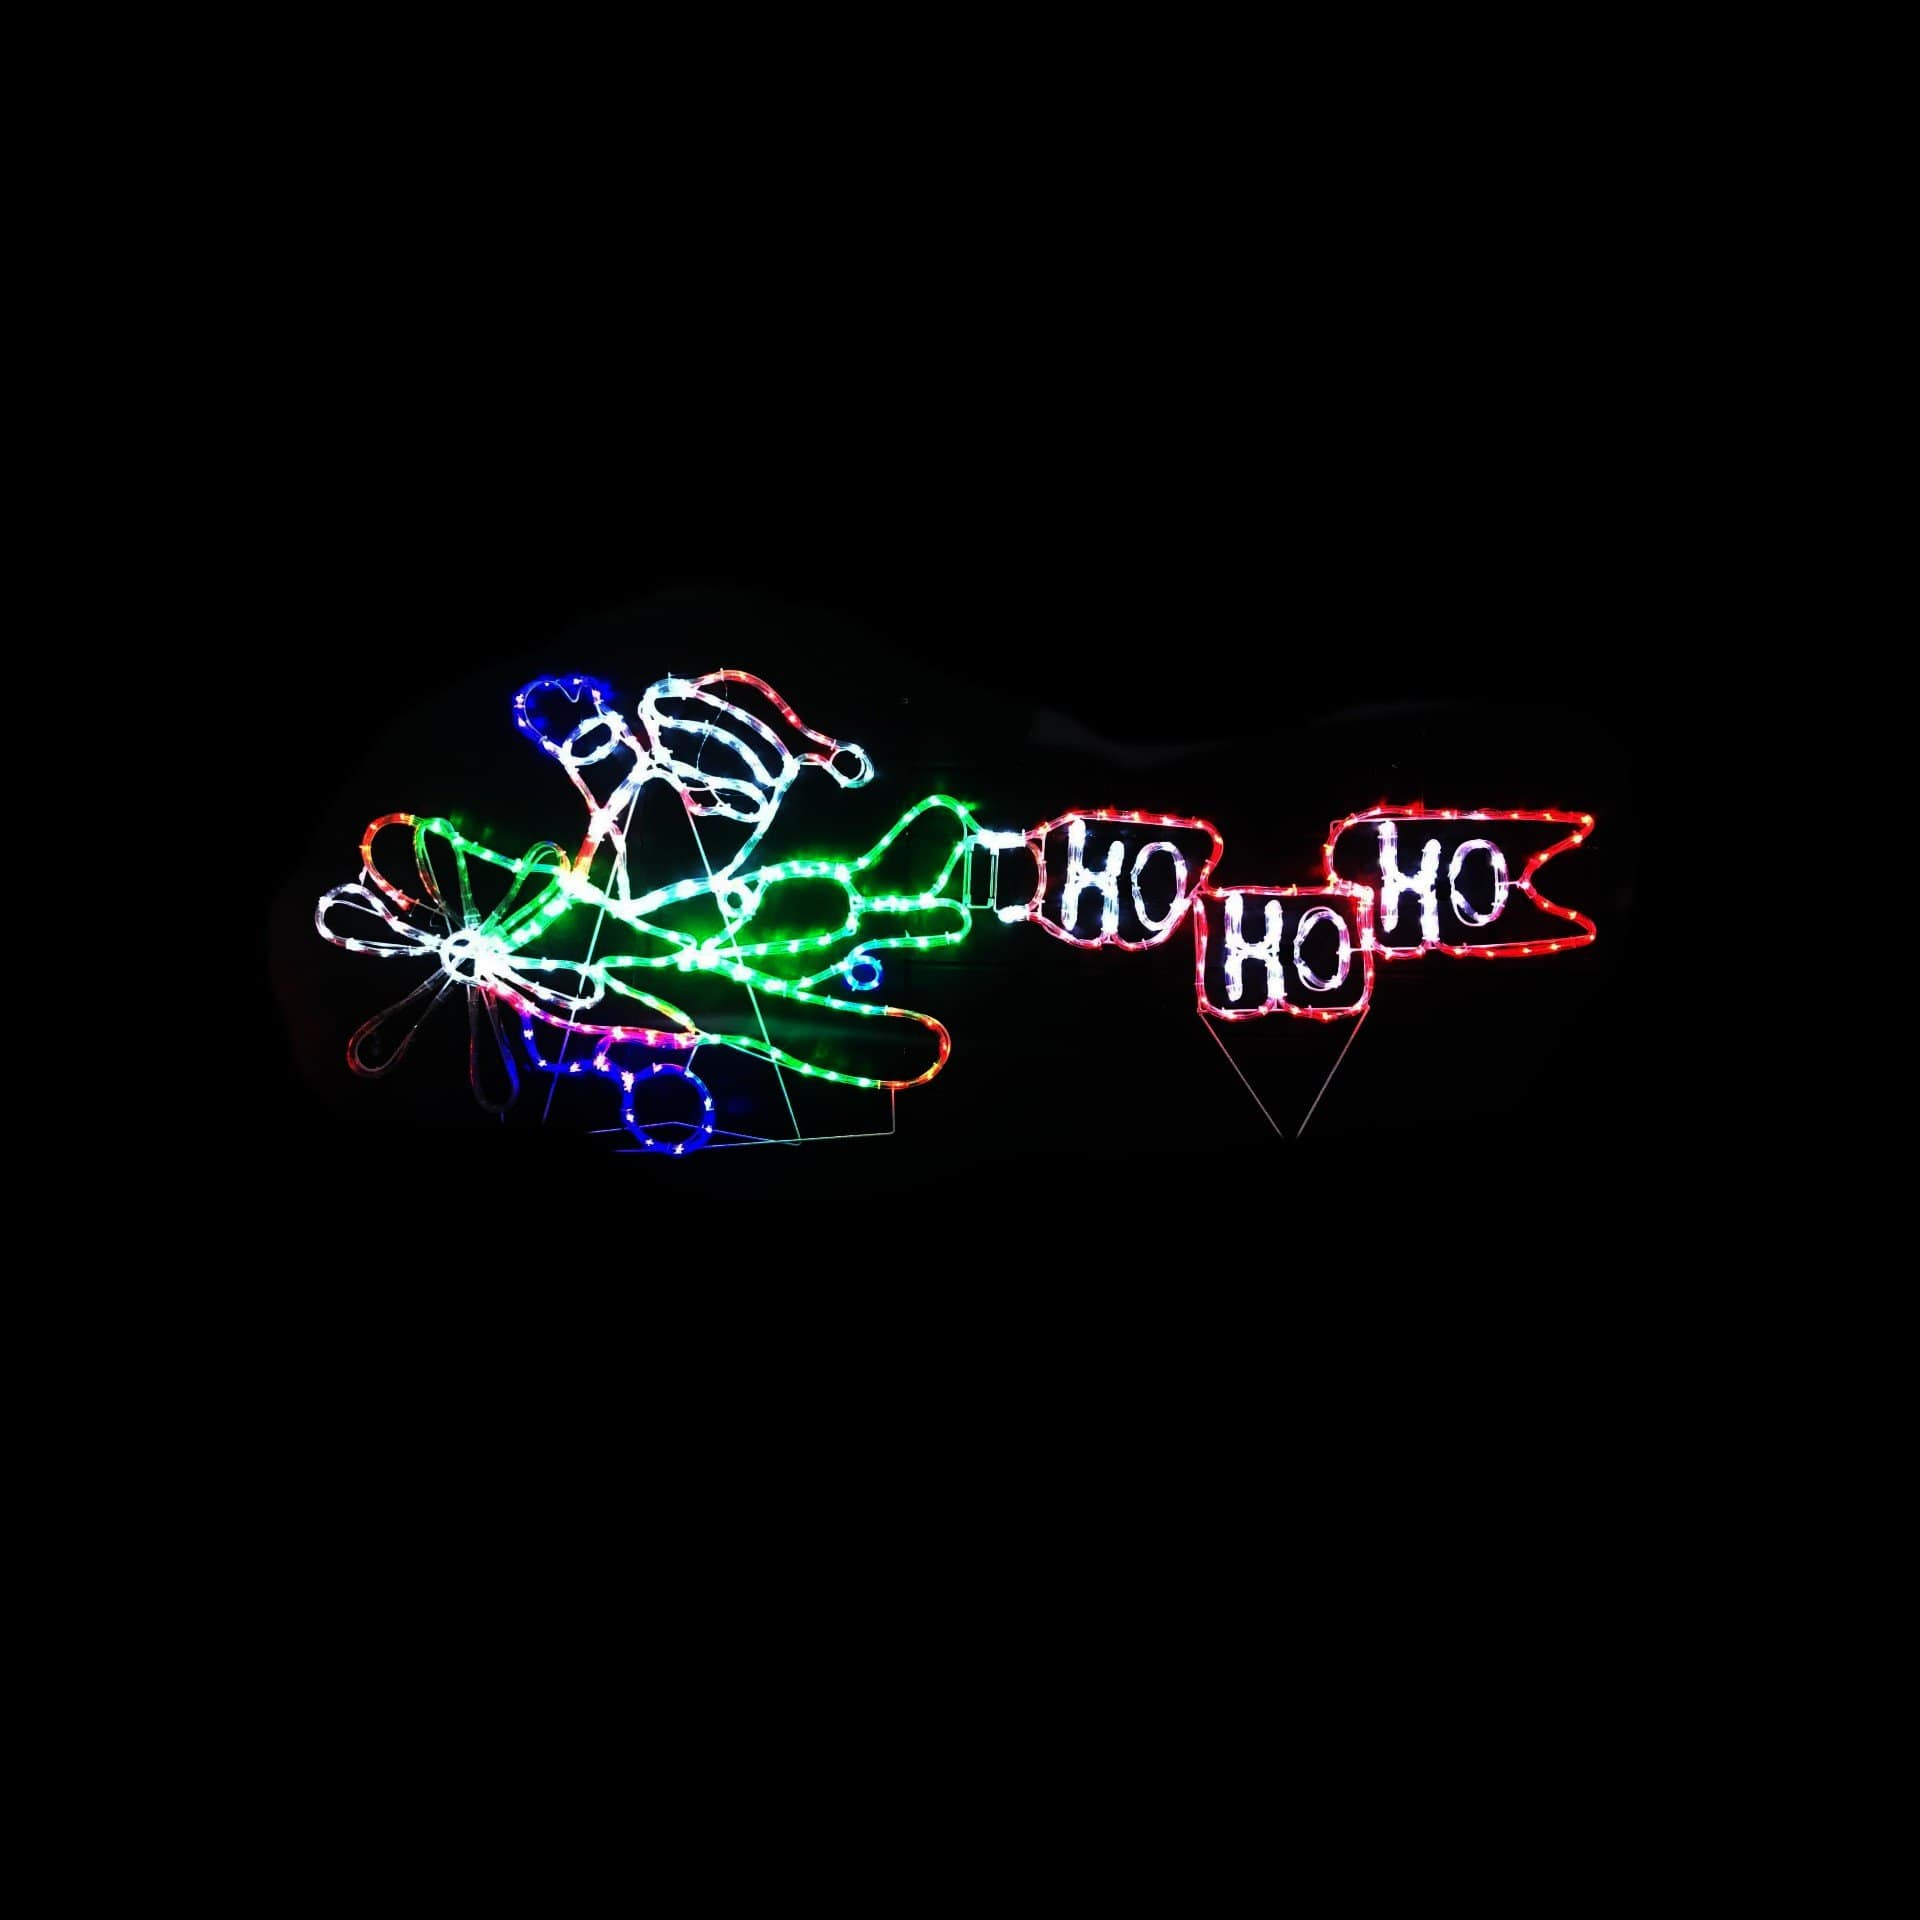 LED Ropelight Santa Airplane